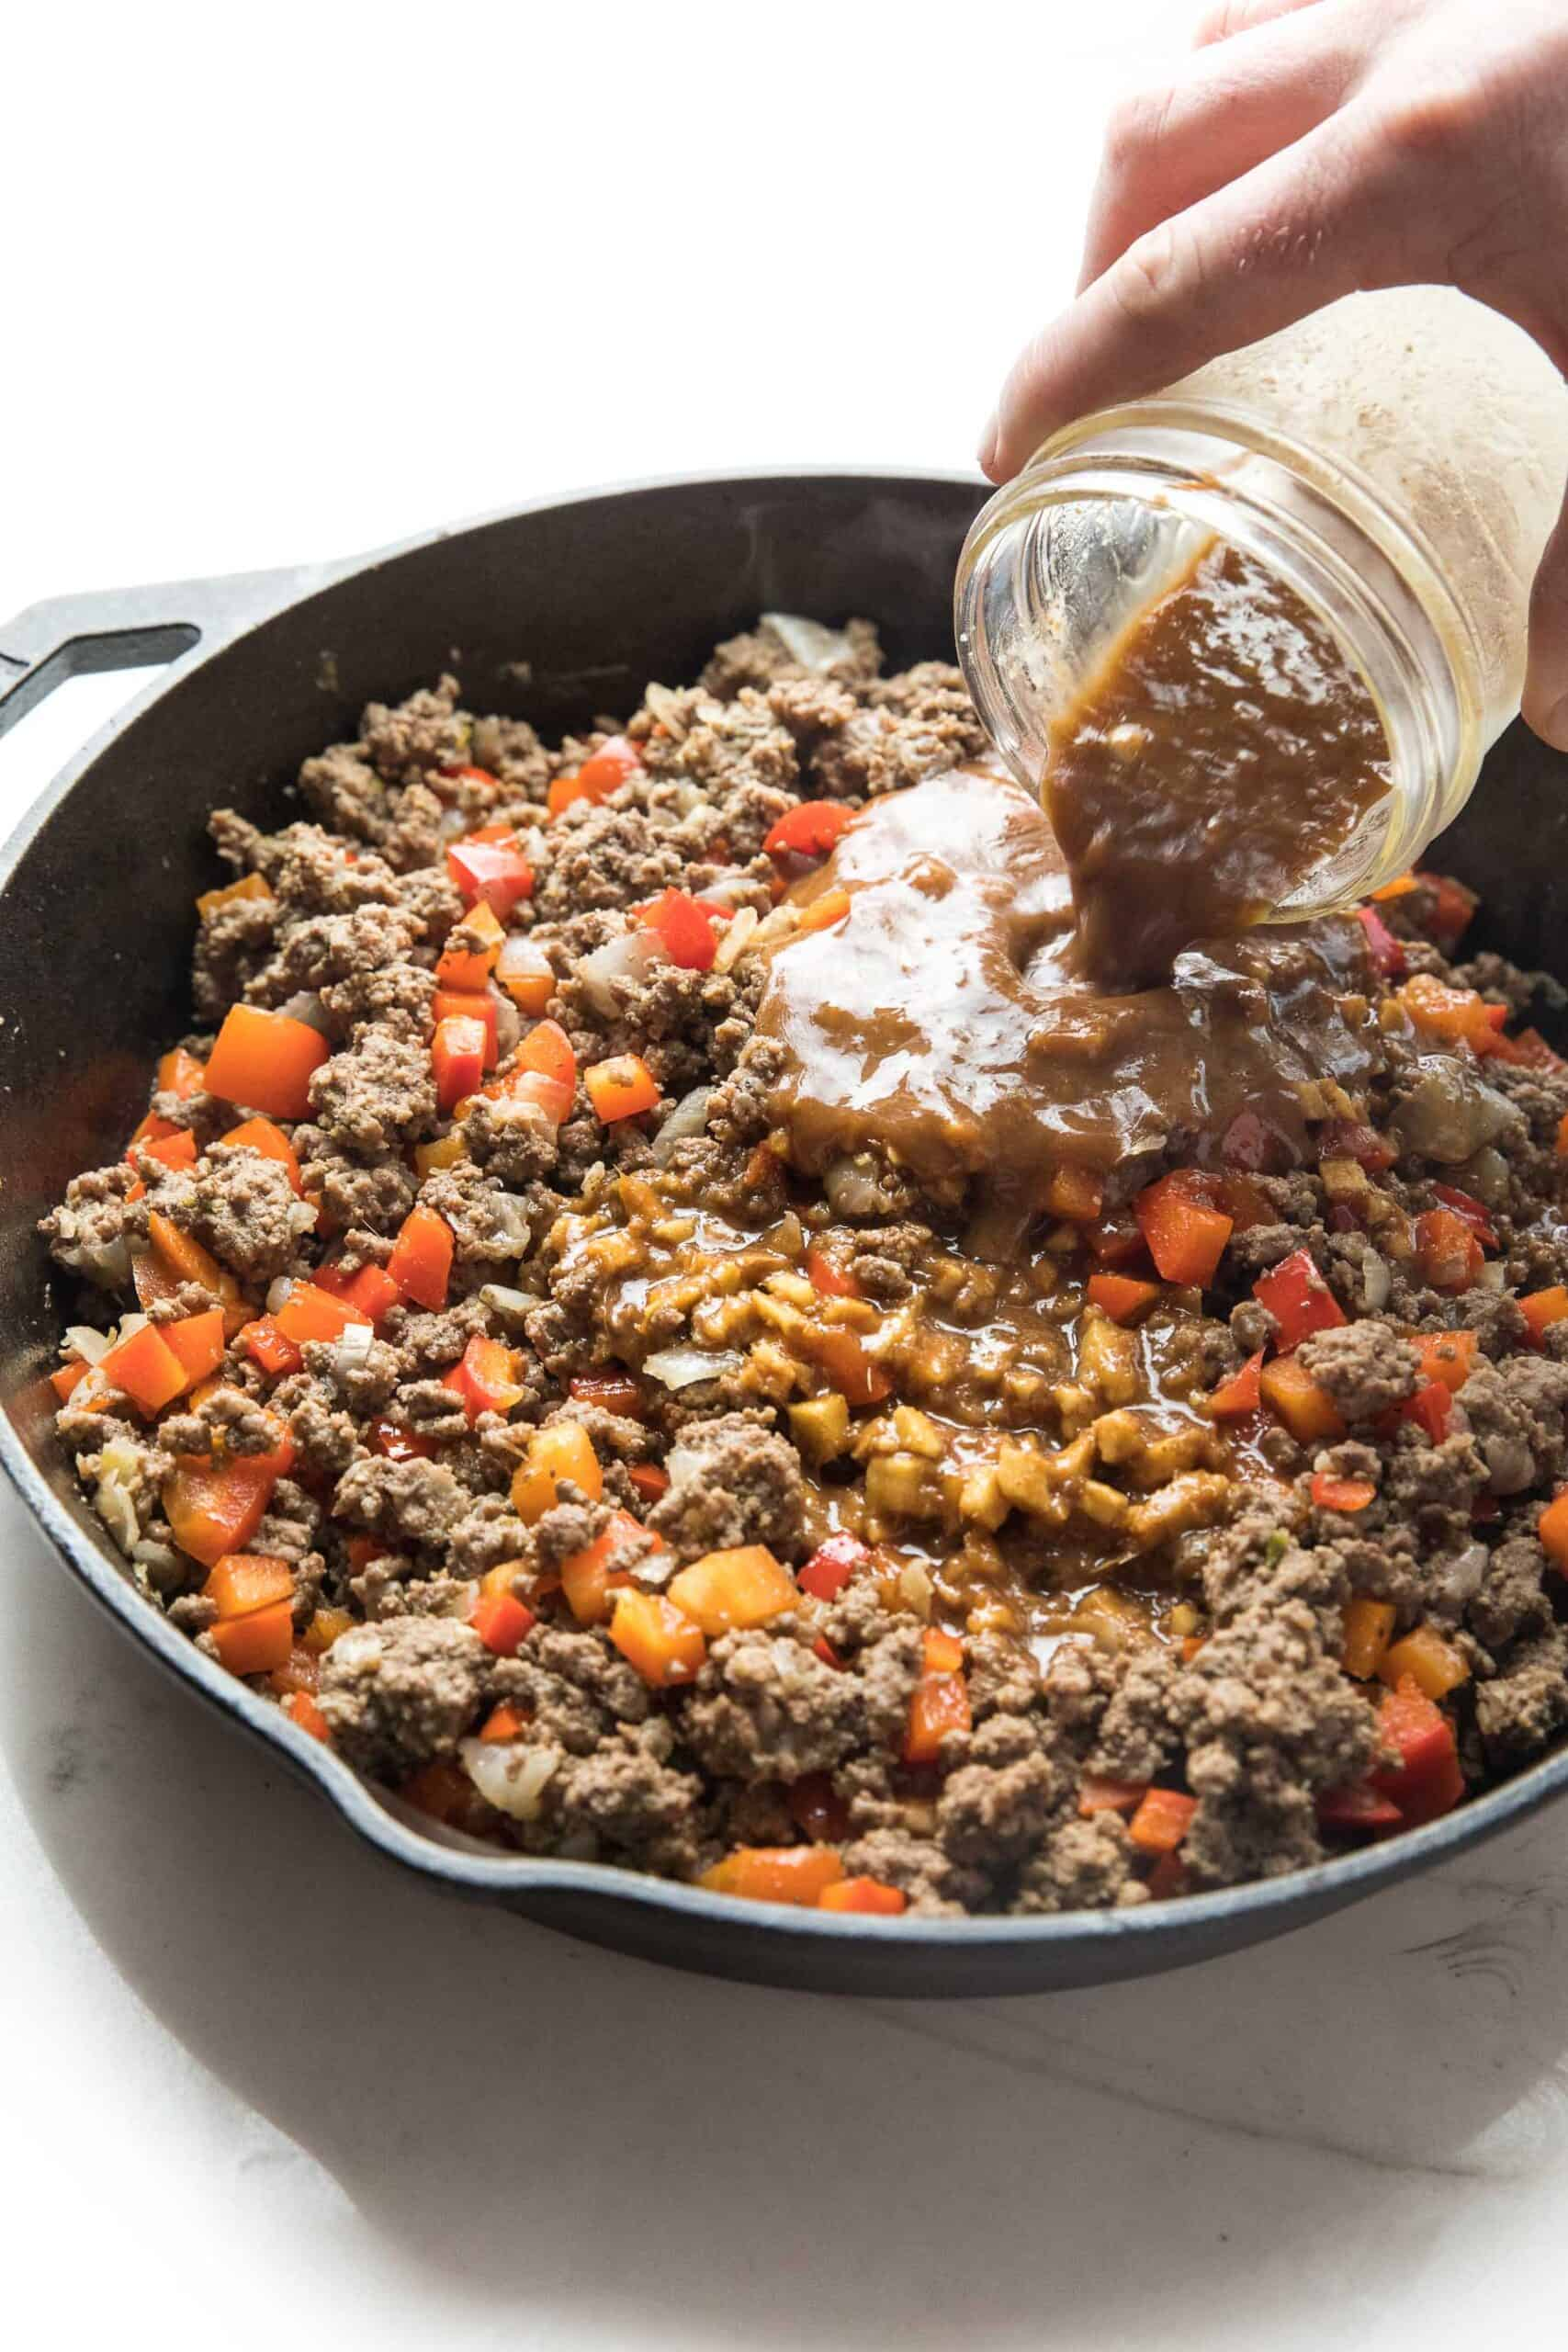 pouring sauce over ground beef and bell peppers in a cast iron skillet